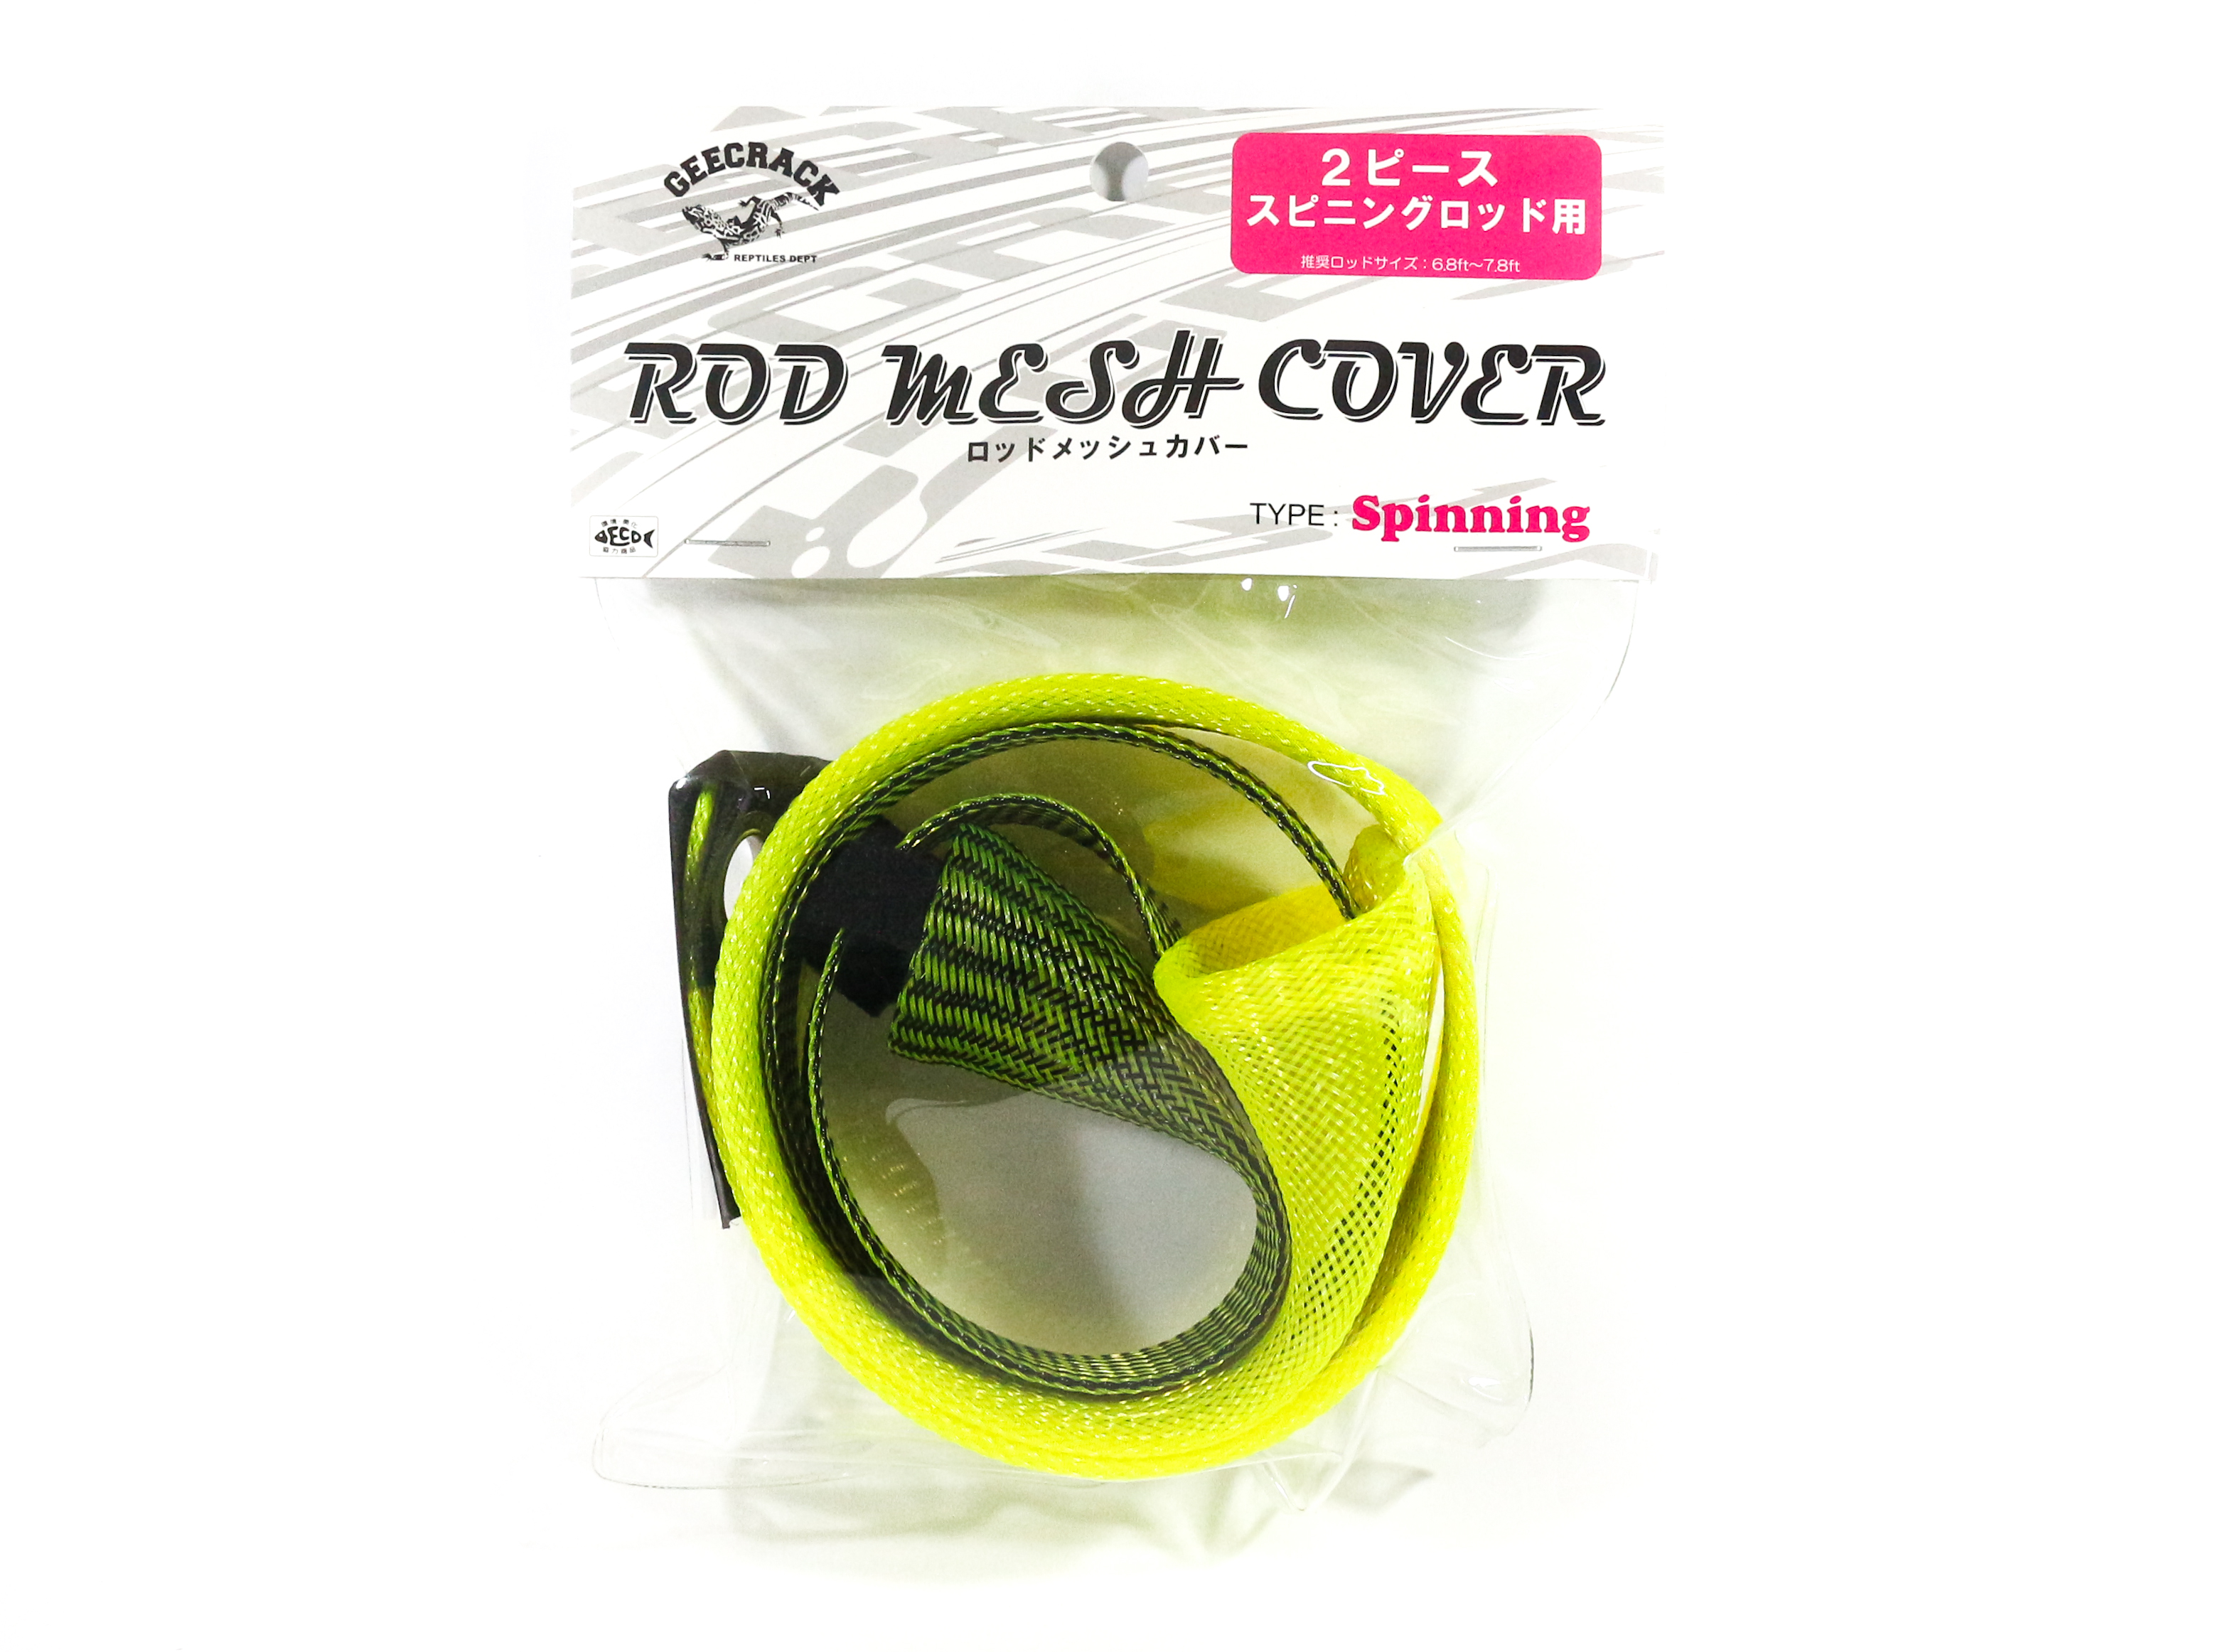 Sale Gee Crack GEE 7172 Rod Mesh Cover Spin 2 Piece 110 - 60 , 40 cm Y (5247)